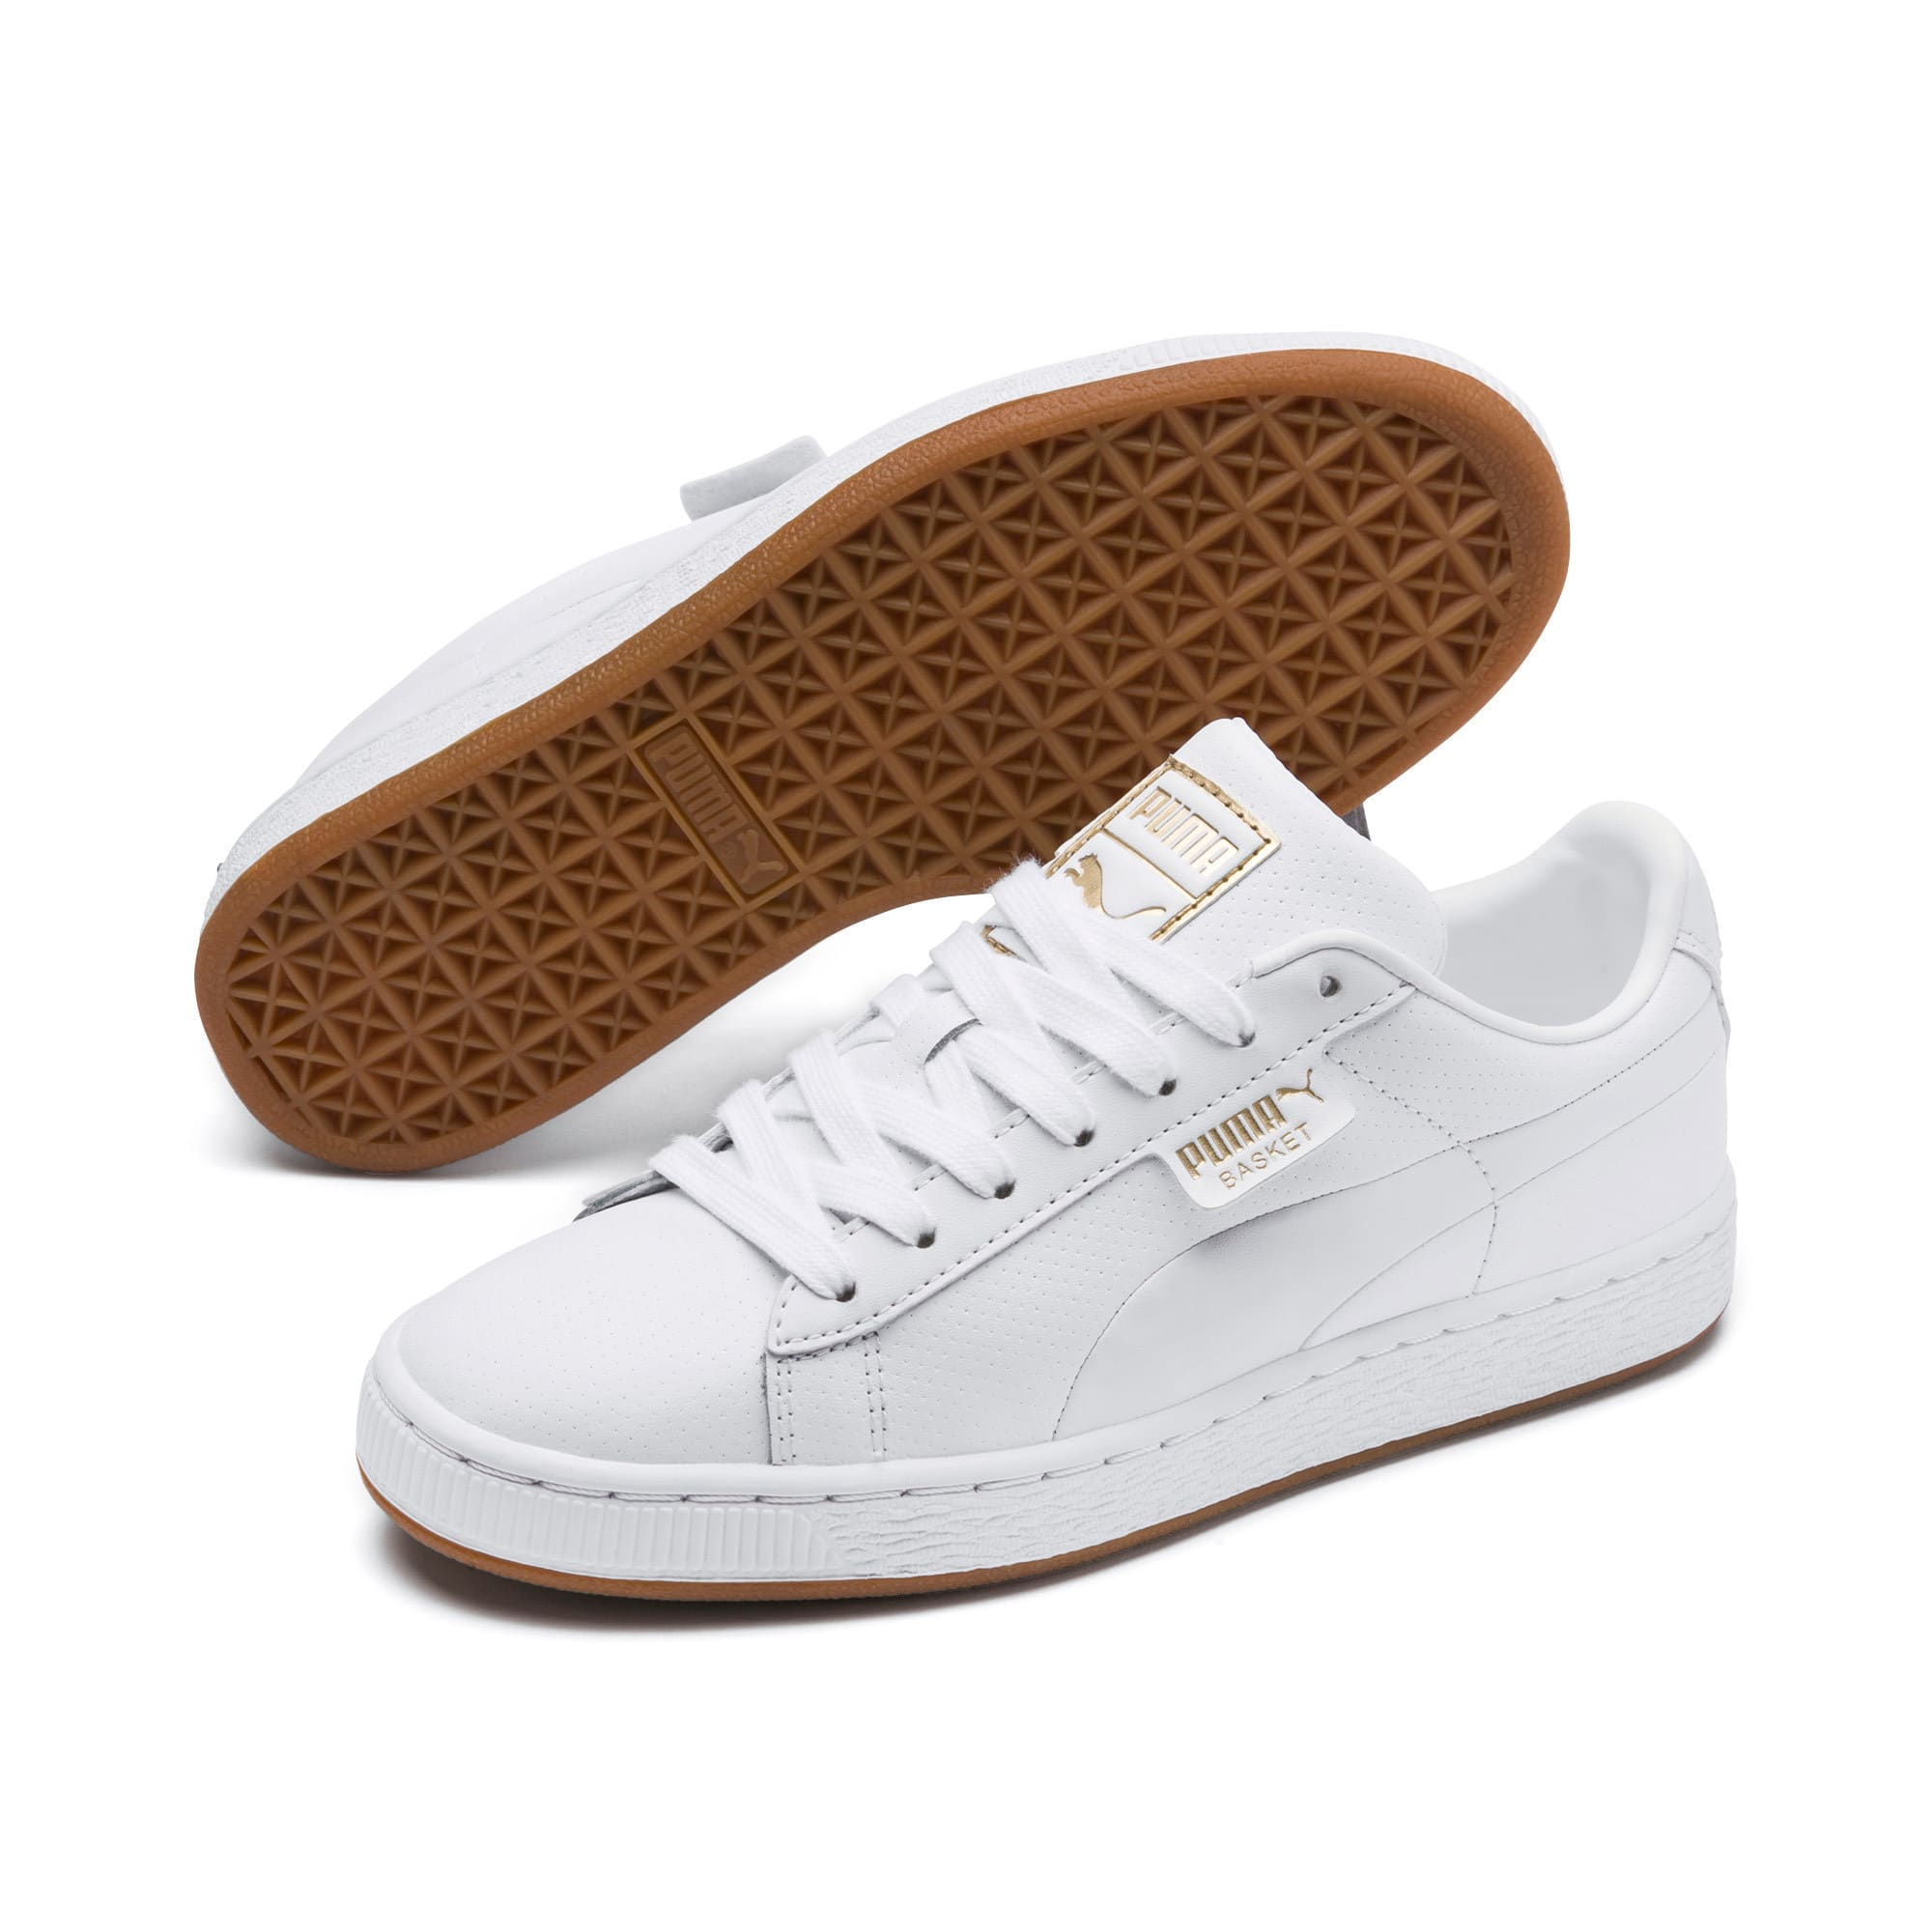 Thumbnail 2 of Basket Classic Gum Youth Sneaker, Puma White-Gum, medium